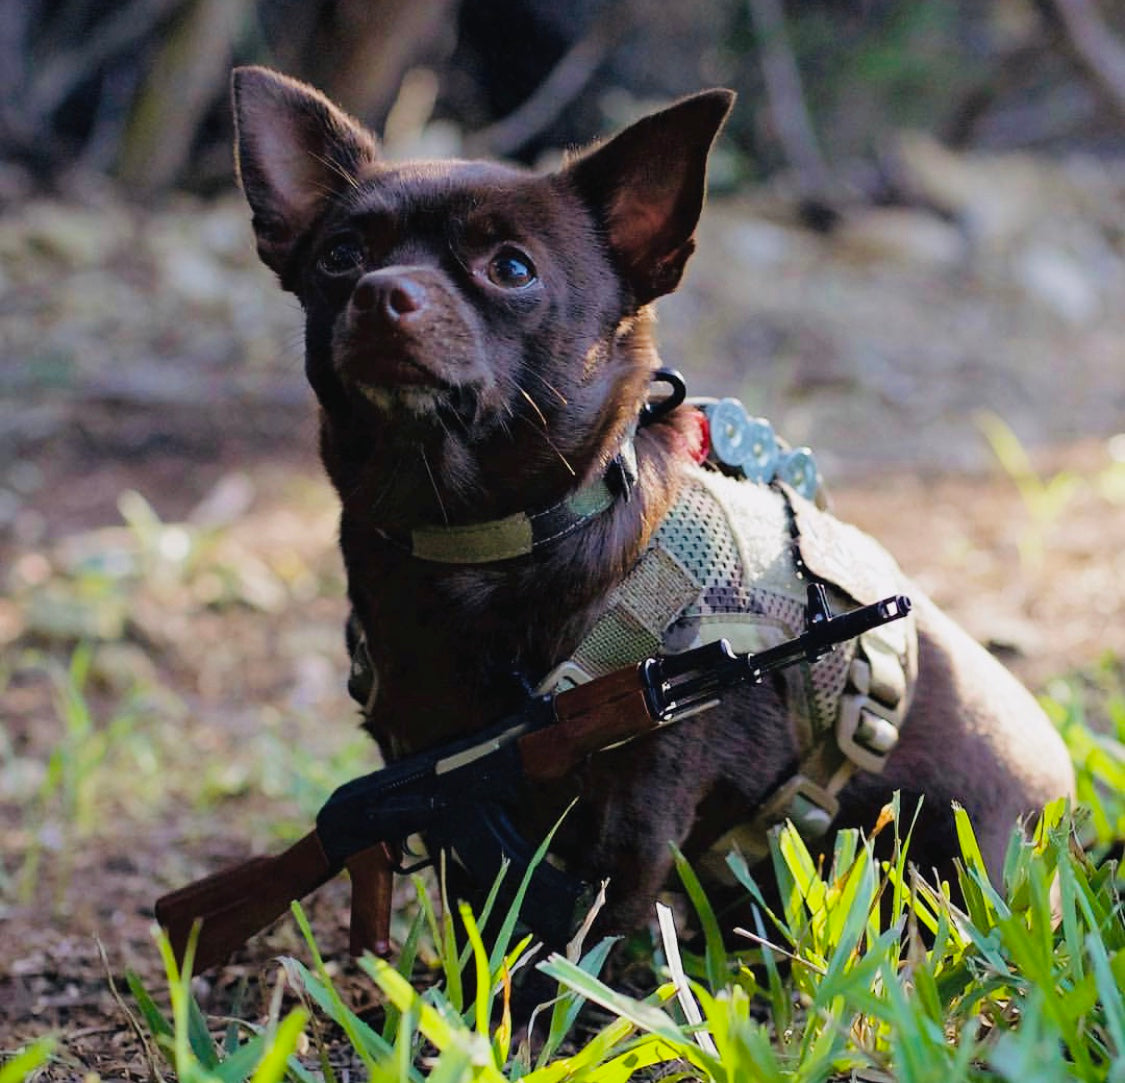 Dog with miniature toy gun around collar